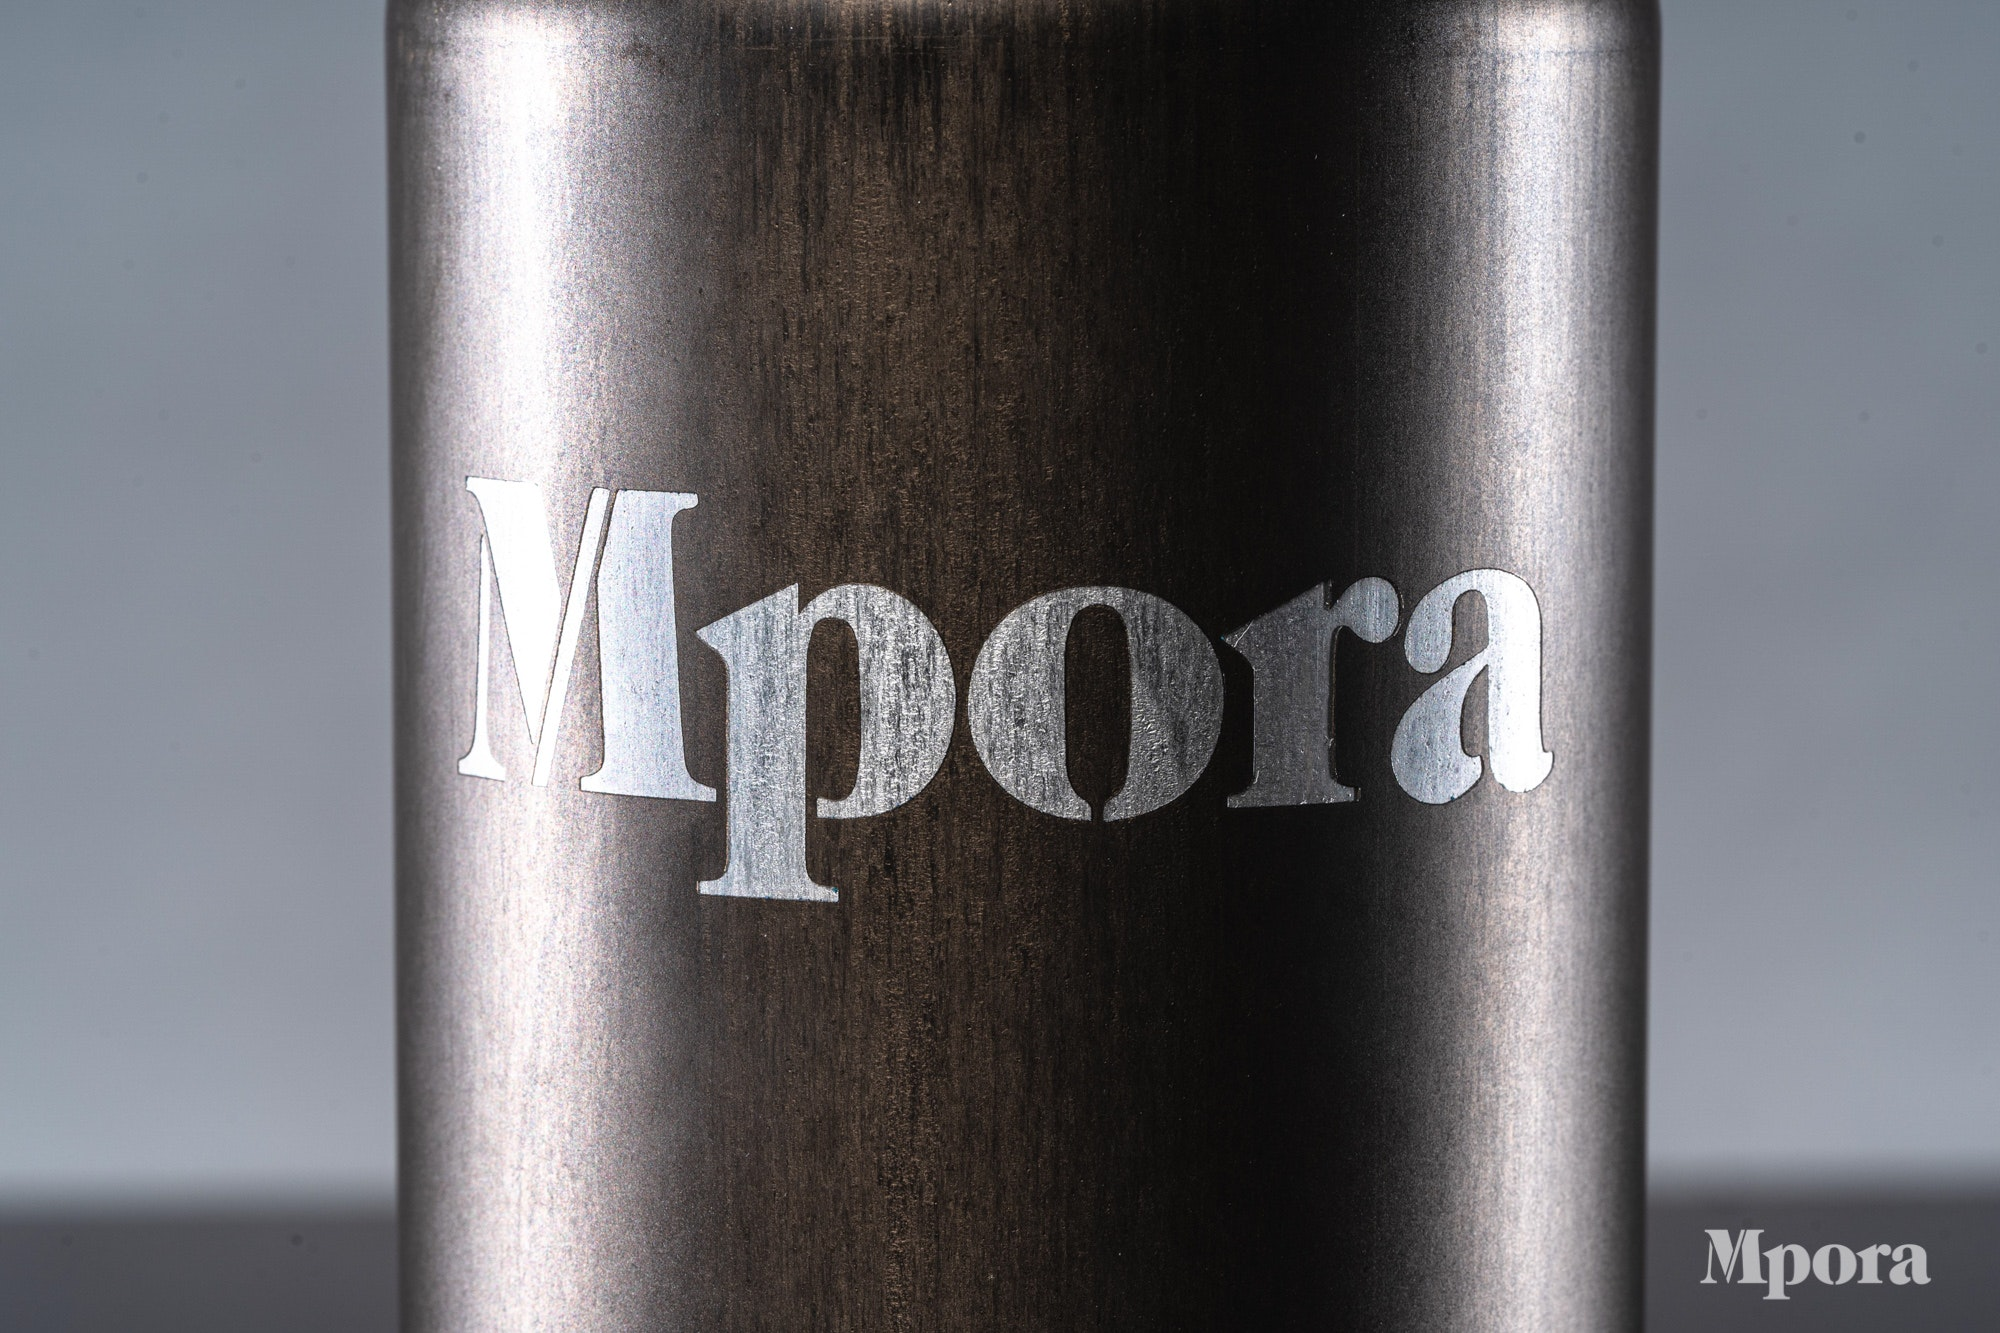 sigg-mpora-waterbottle-review